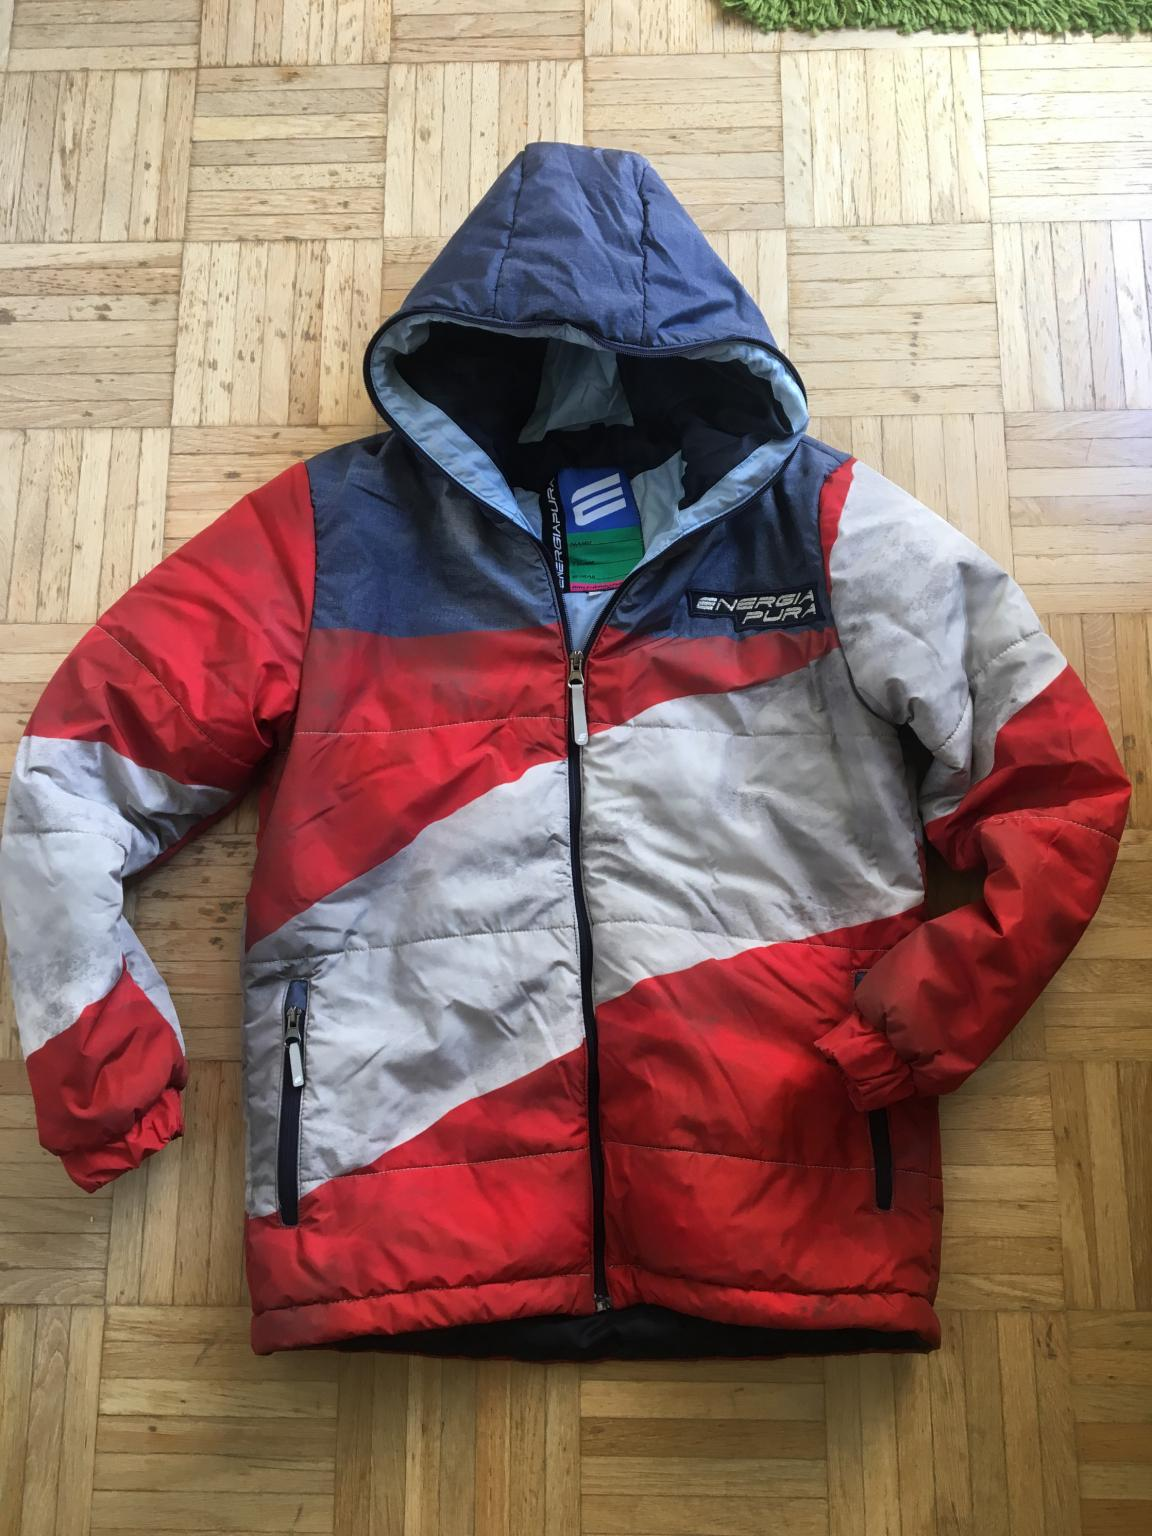 Energiapura Kinder Winter Jacke GR 164 170 in 8052 Graz